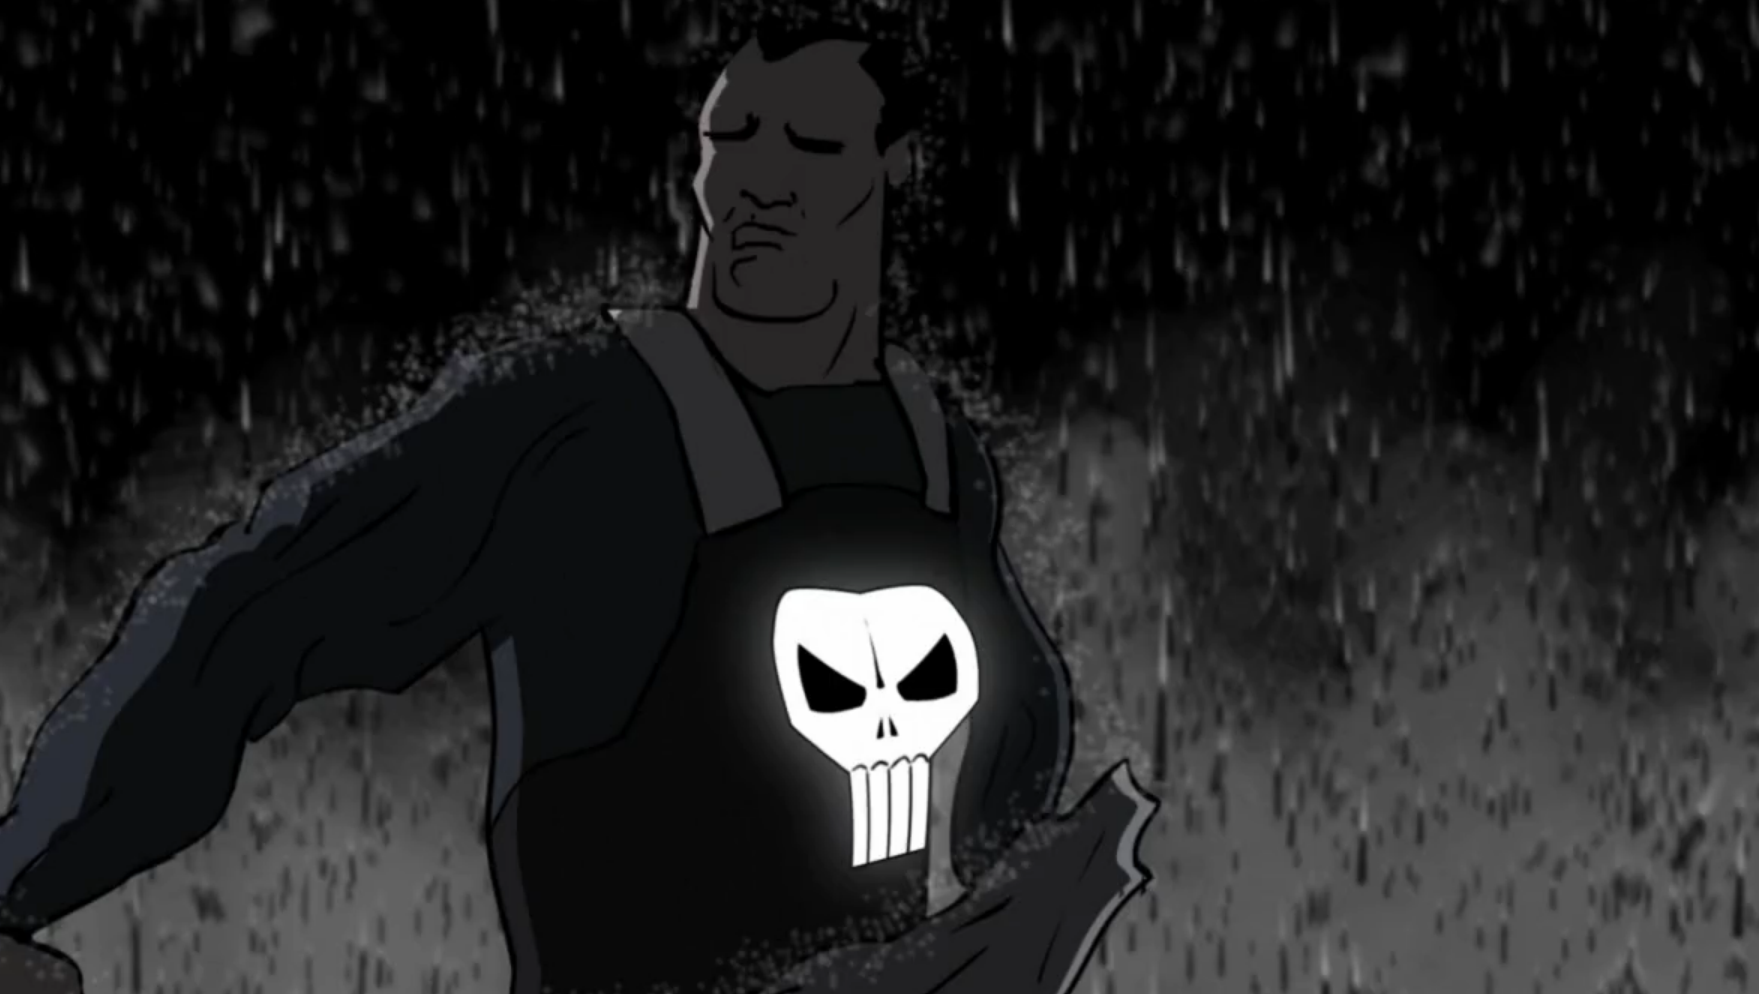 Punisher movie: Do Not Fall in New York City